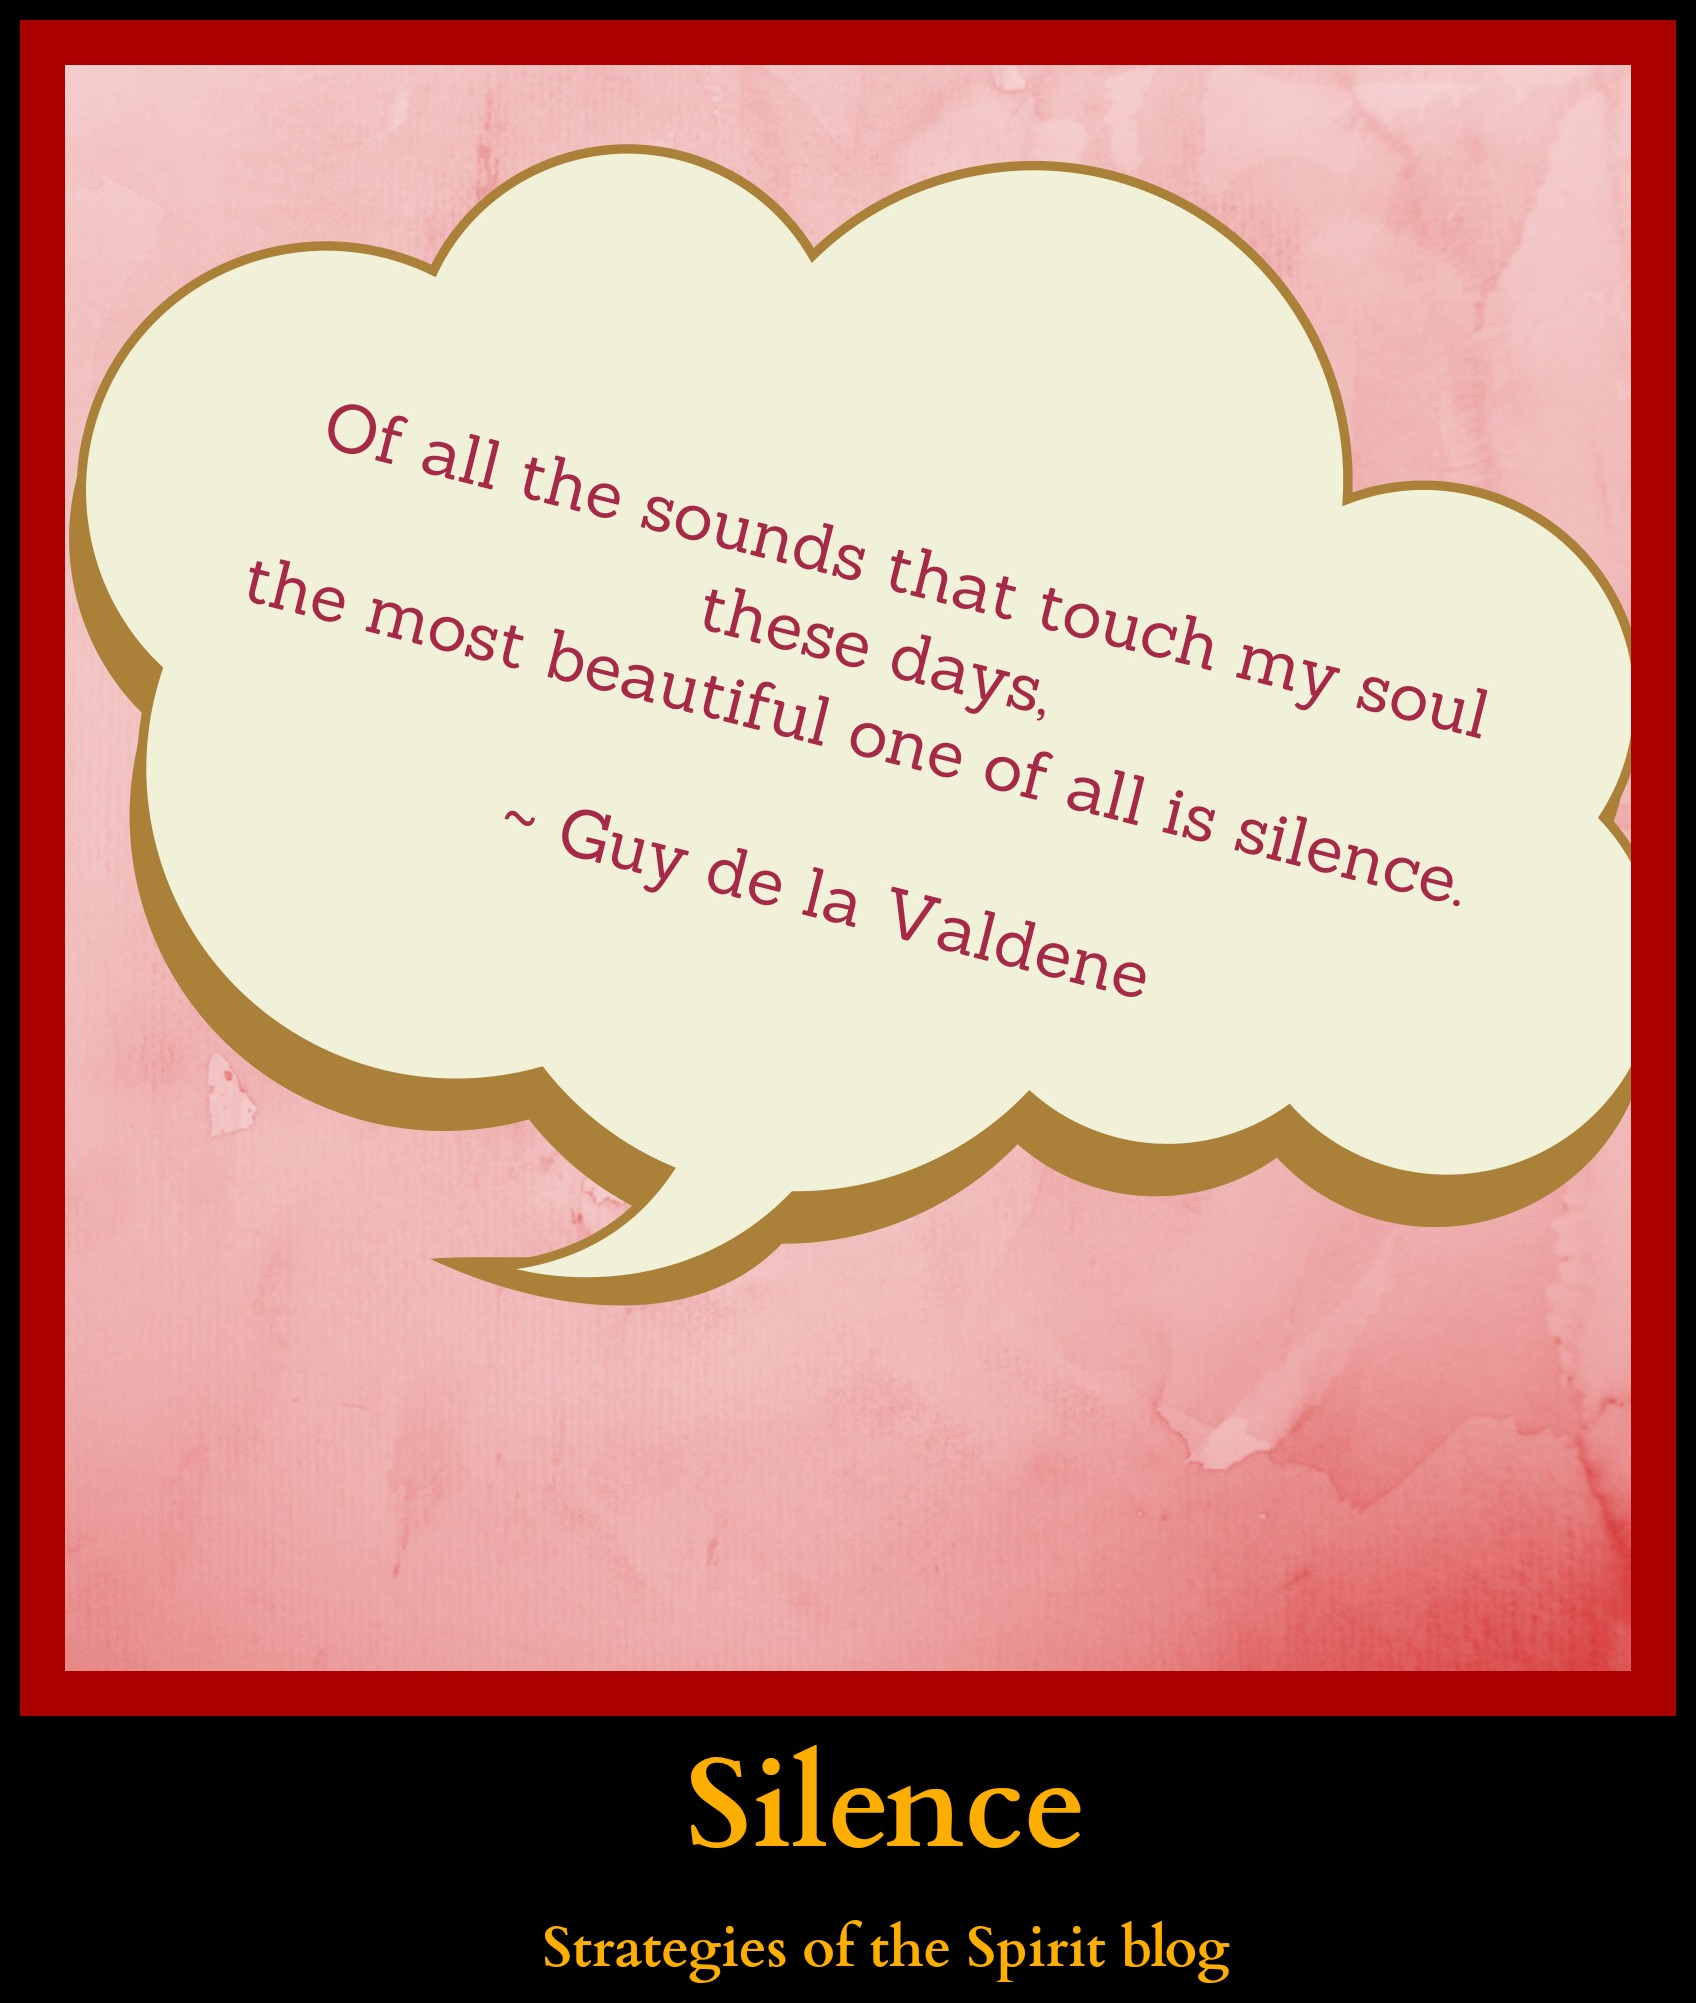 silence quotes, strategies of the spirit